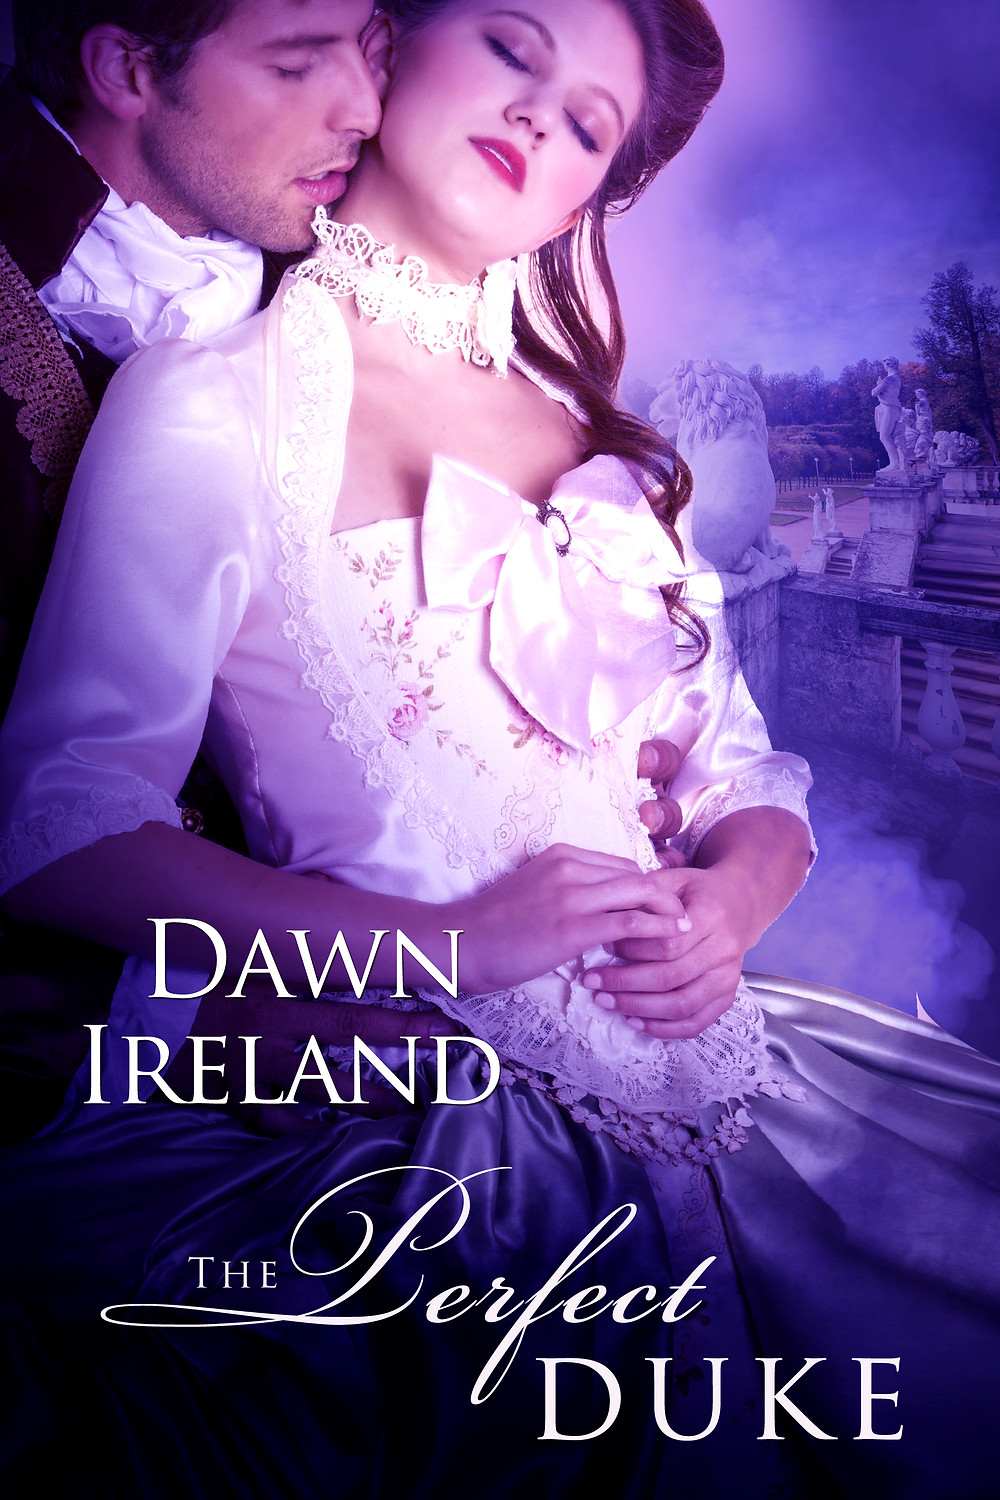 THE PERFECT DUKE by Dawn Ireland